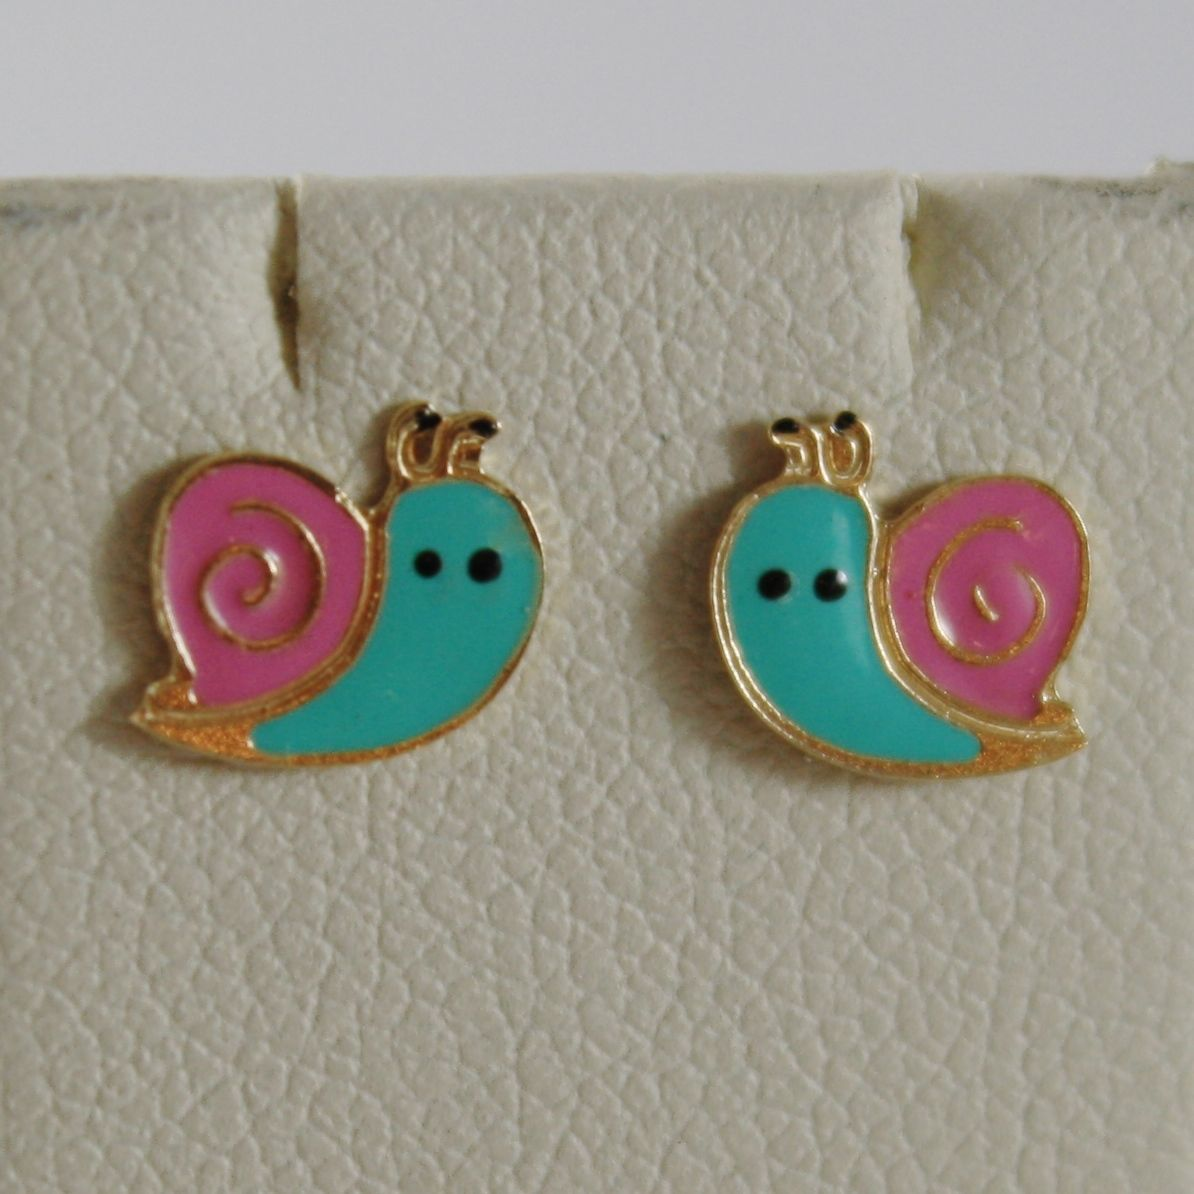 18K YELLOW GOLD CHILD PINK AQUA SNAIL MINI EARRINGS GLAZED, FLAT, MADE IN ITALY